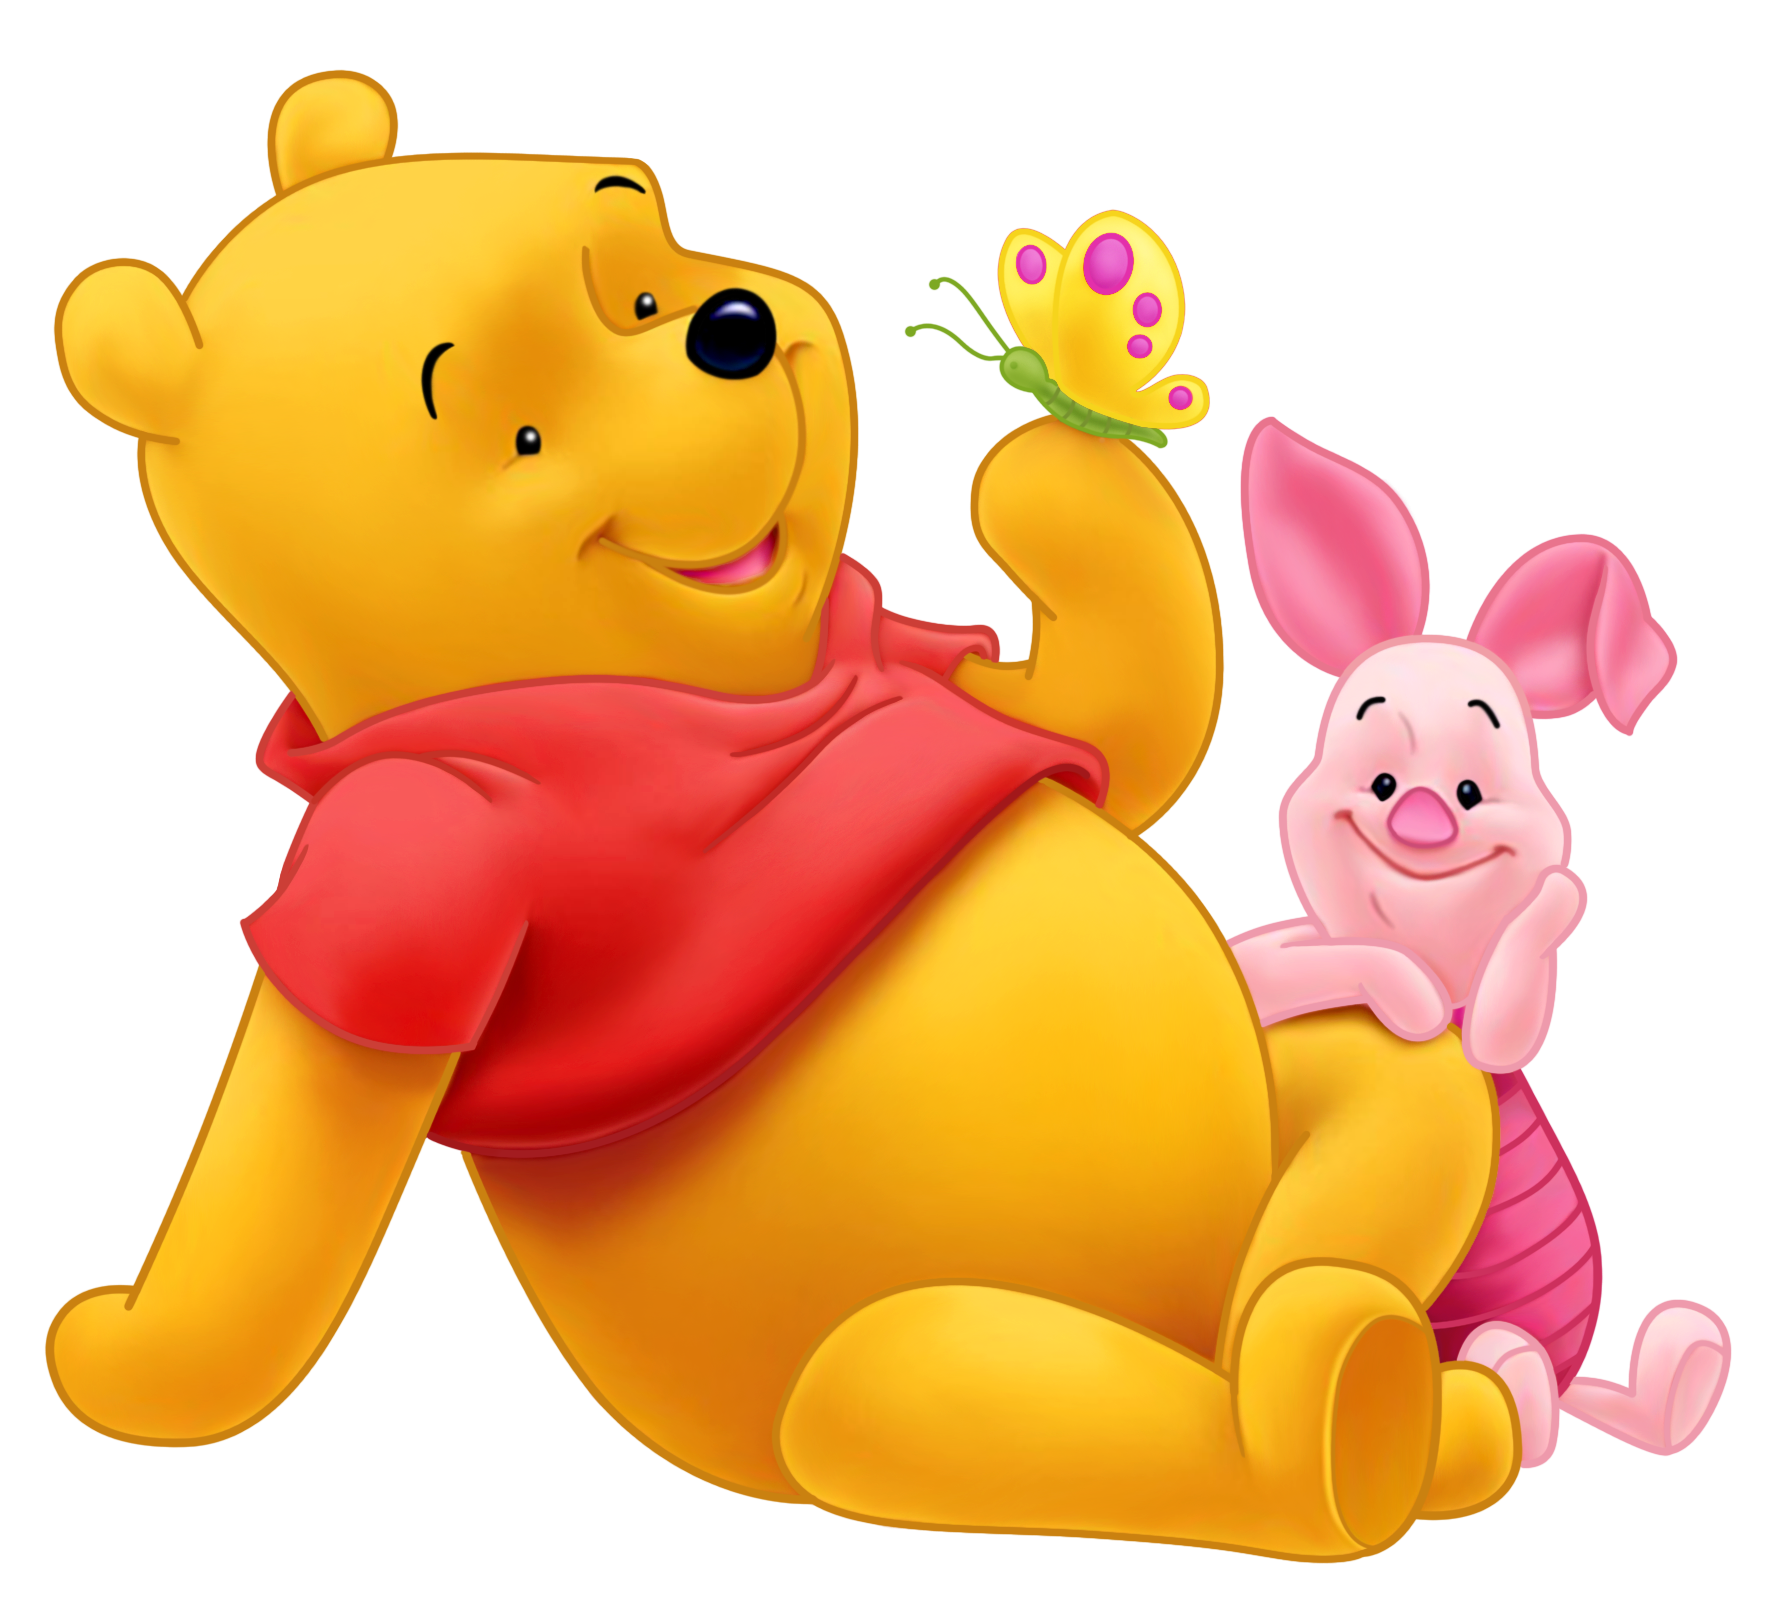 winnie the pooh and piglet png picture crafts #17390